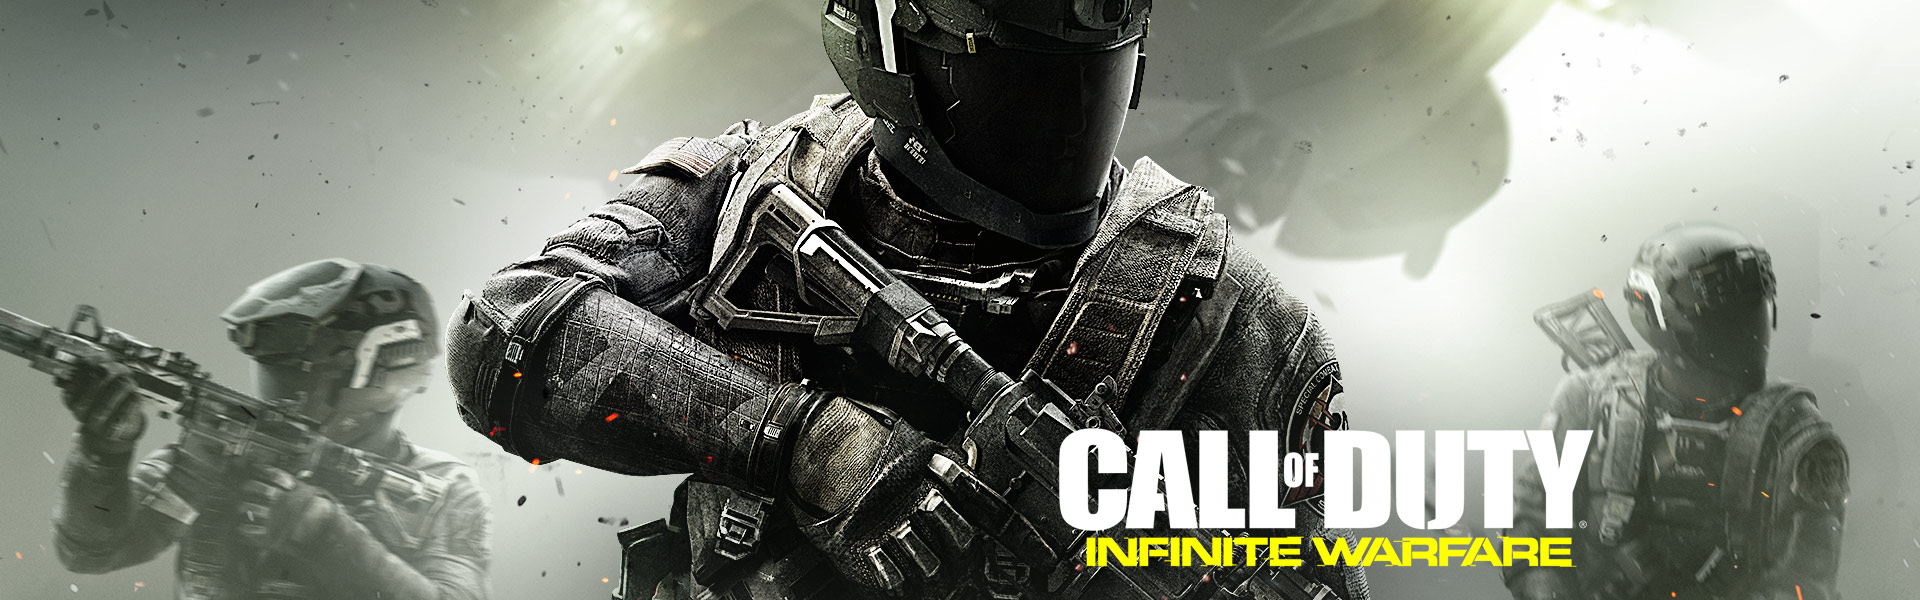 《Call of Duty Infinite Warfare》